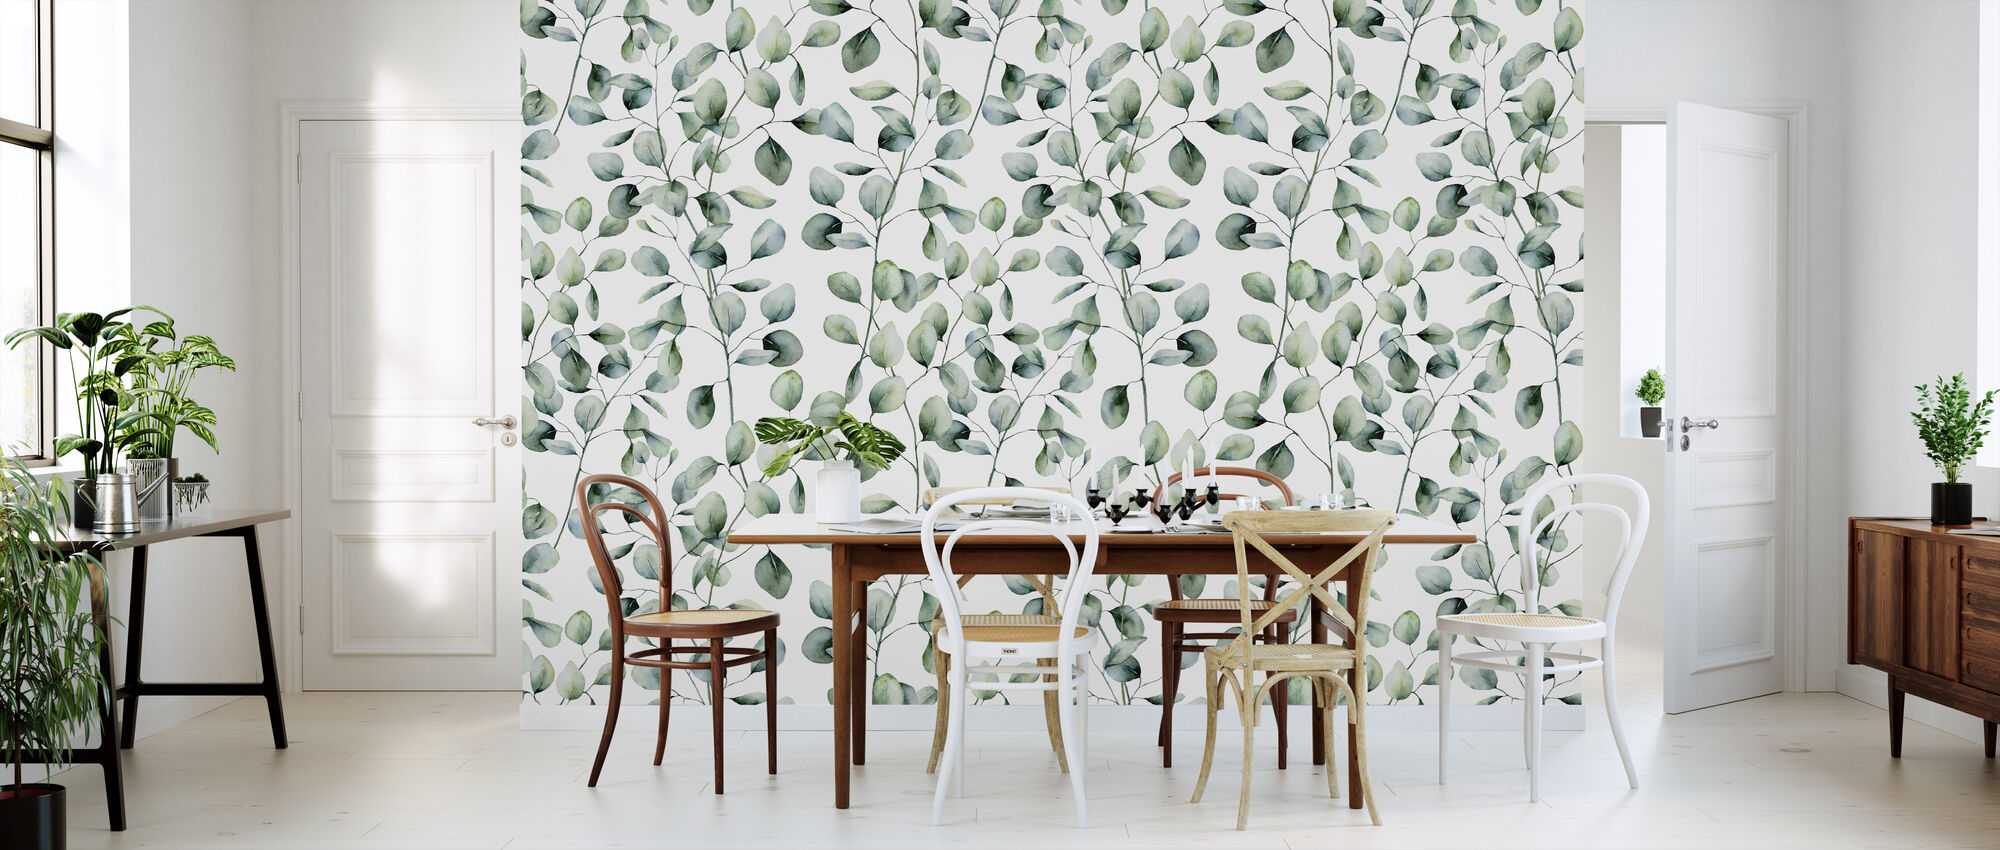 Eucalyptus - Wallpaper - Kitchen